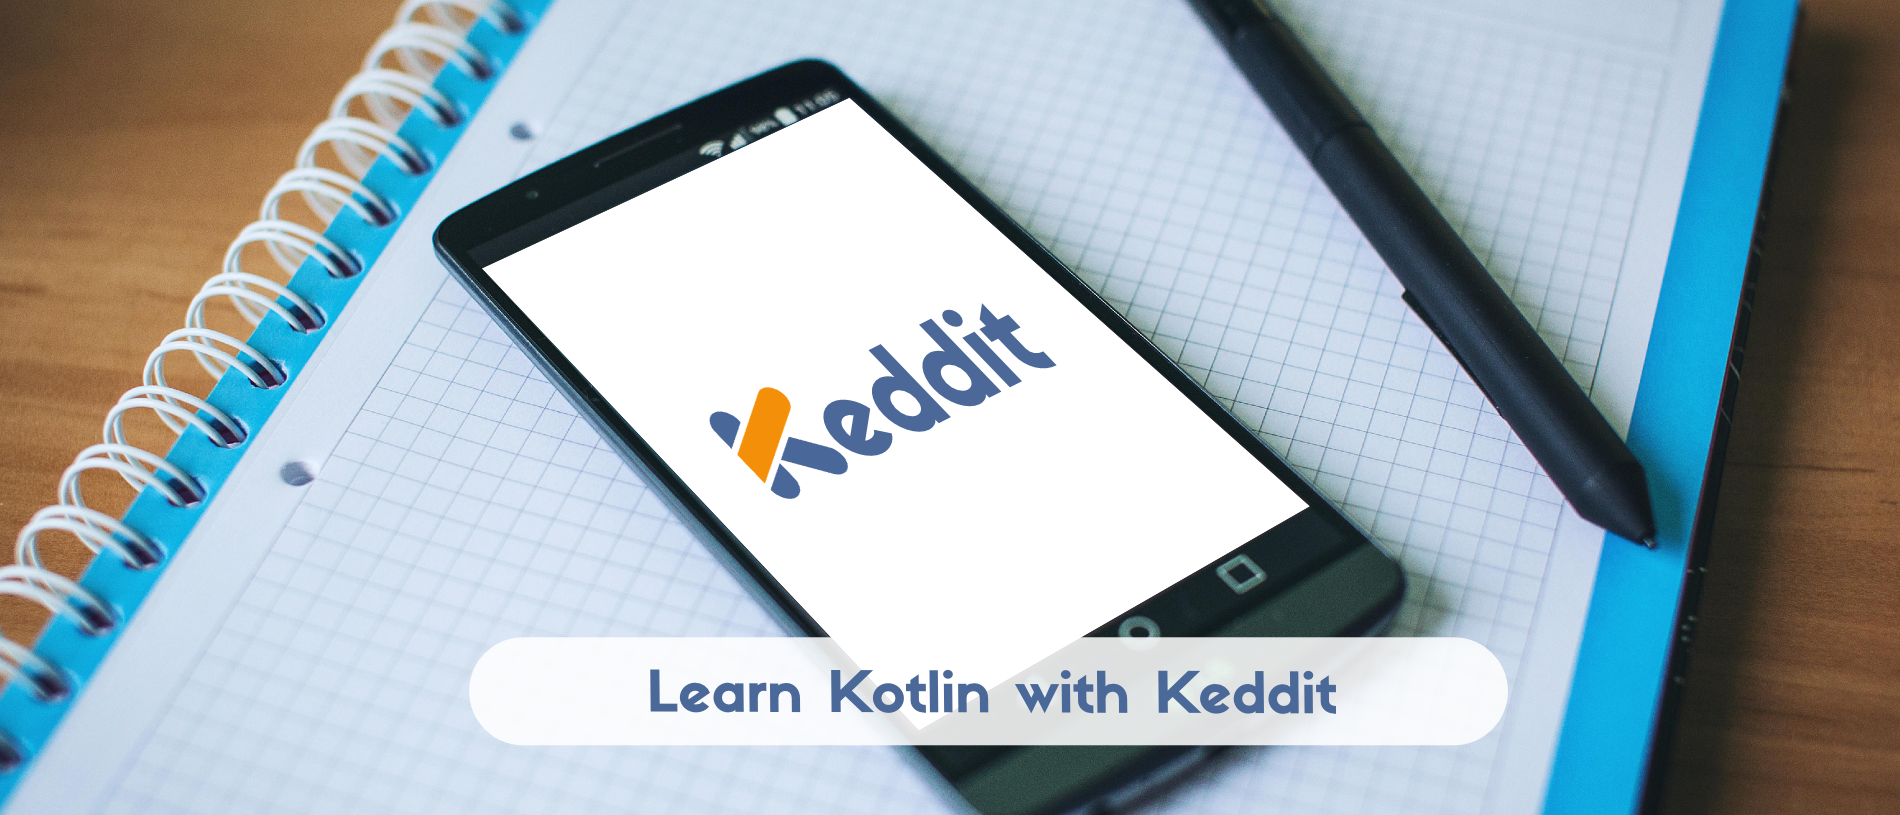 Keddit — Intro: Learn Kotlin while developing an Android App